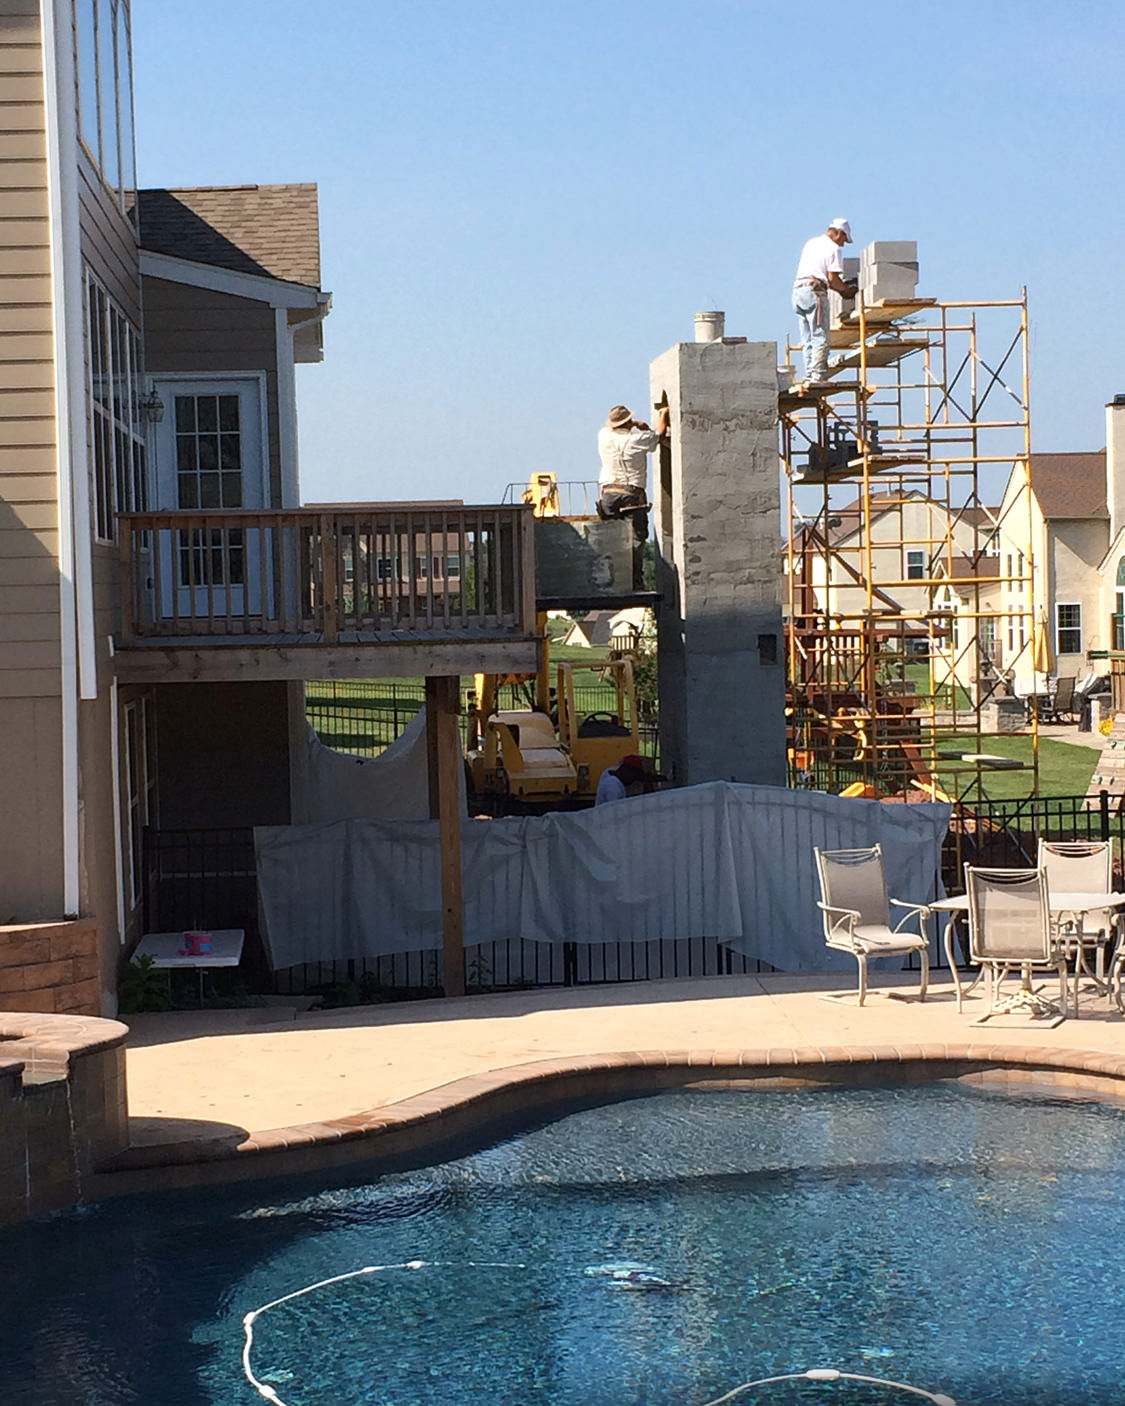 MasterPLAN prides itself in treating your home as carefully as we would our own during the installation phase of your outdoor living project.